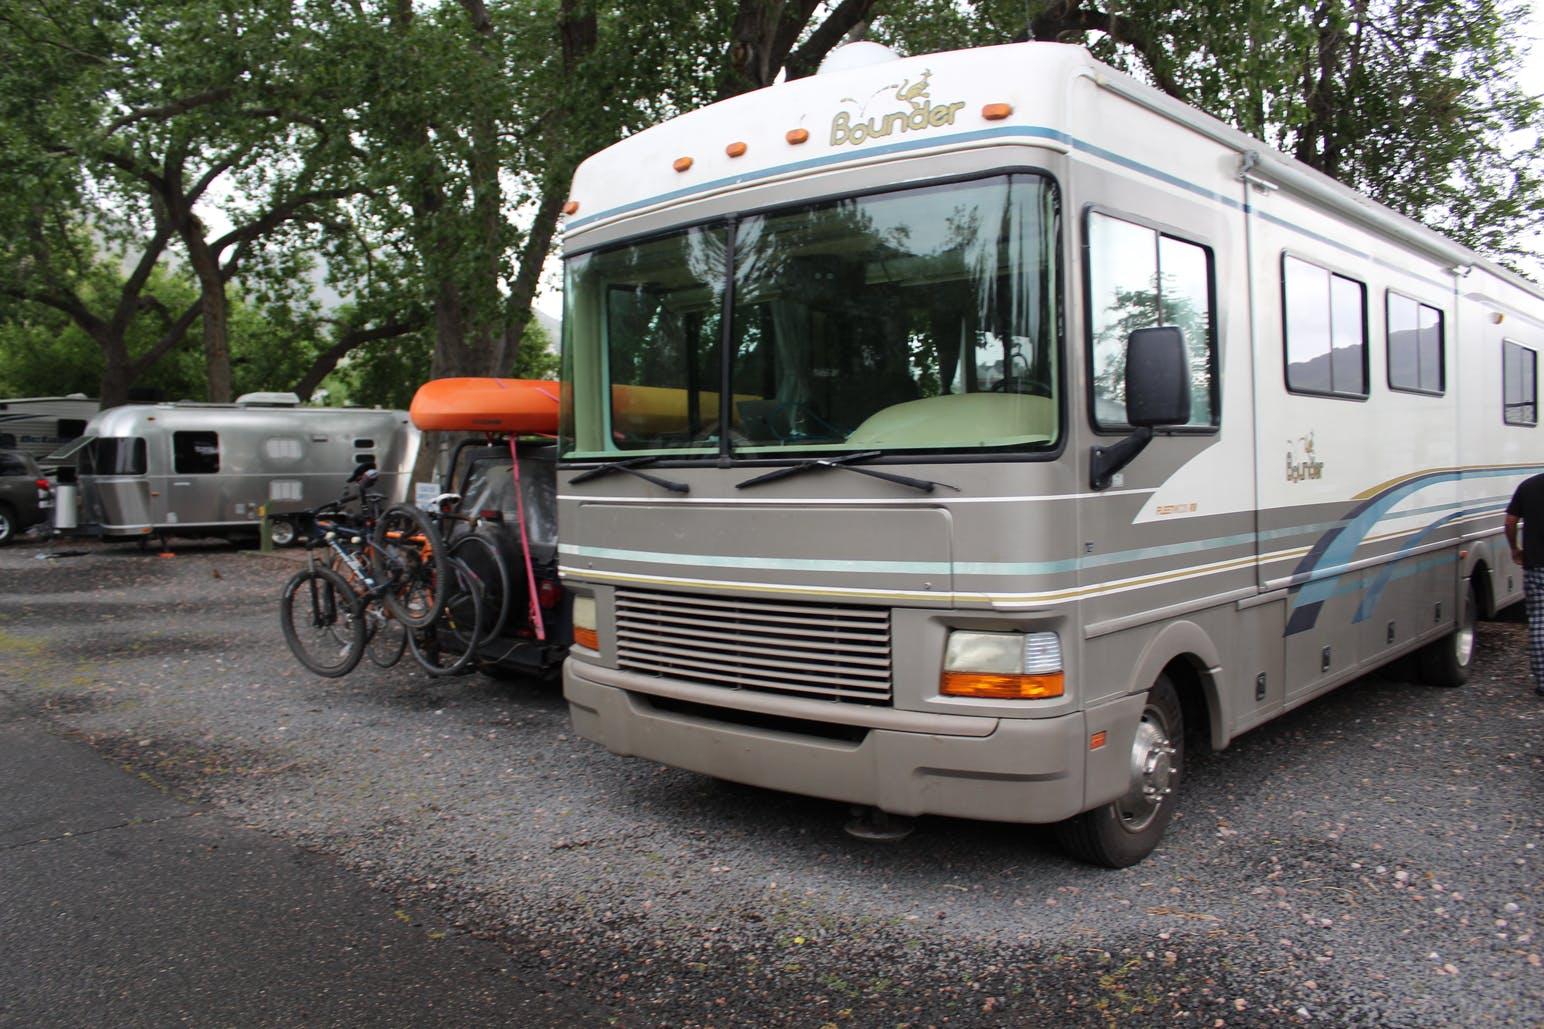 RV parked beside car with bike rack and kayak strapped to it in a gravel RV park.